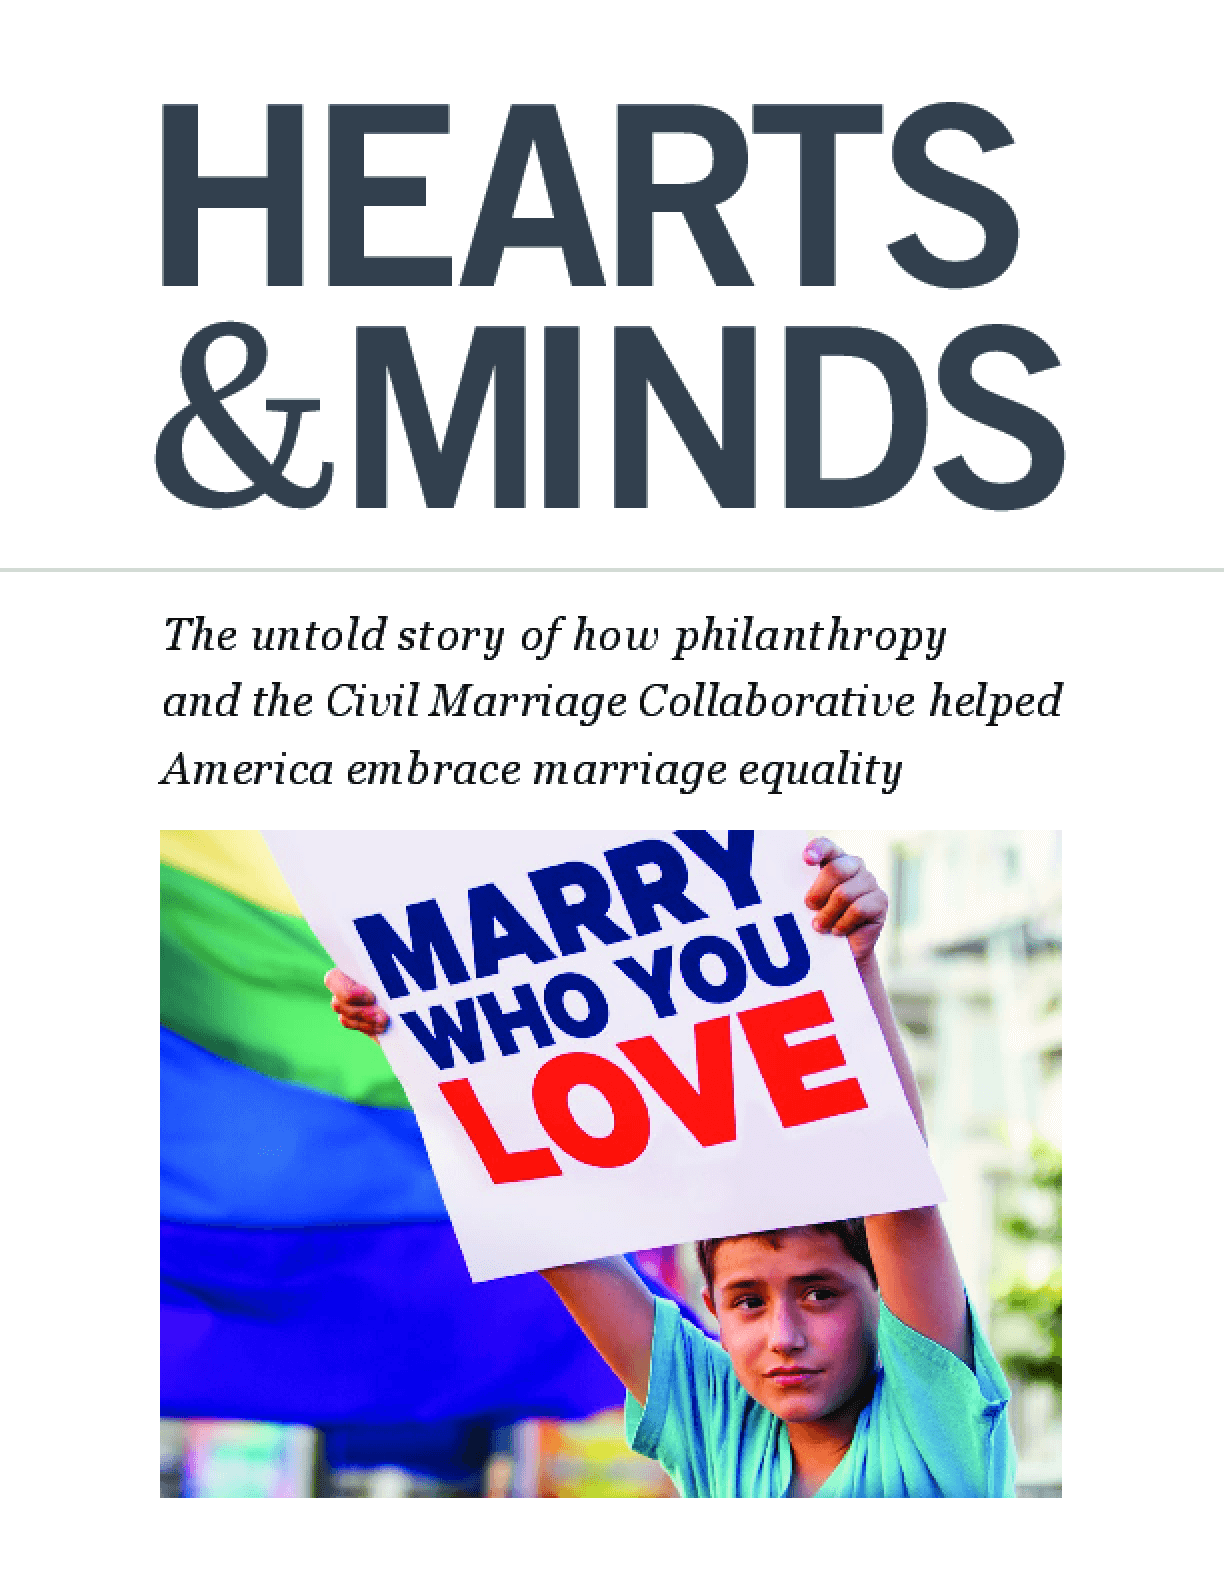 Hearts and Minds: The Untold Story of How Philanthropy and the Civil Marriage Collaborative Helped America Embrace Marriage Equality